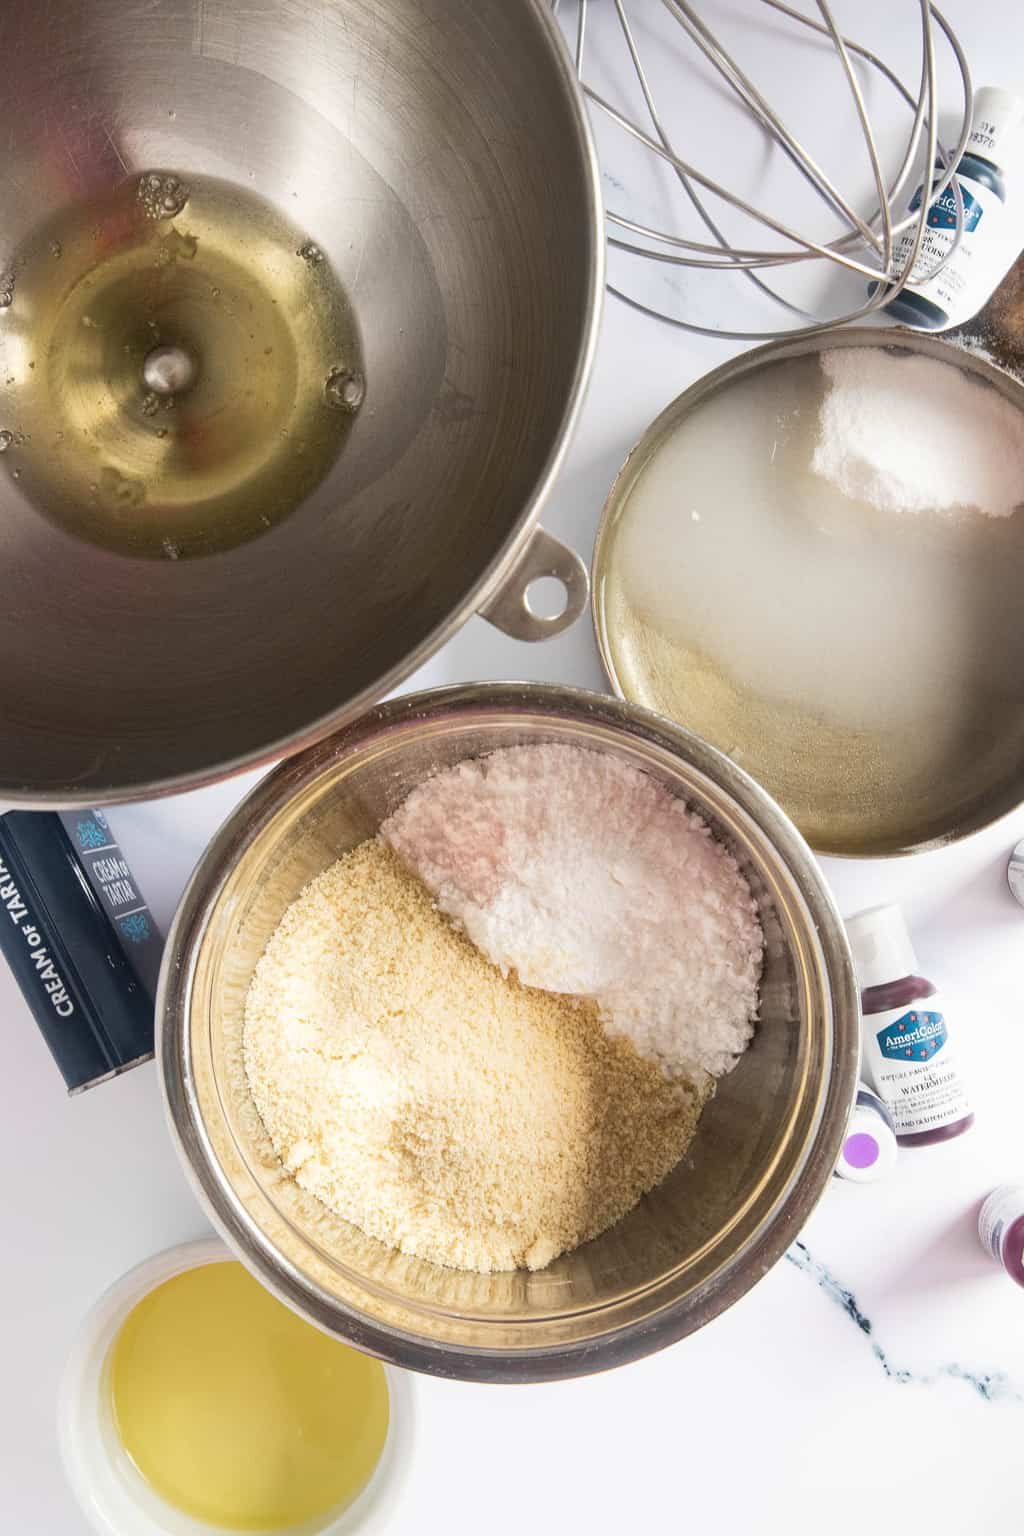 A photo of the ingredients to make Italian Macarons by Sugar and Cloth